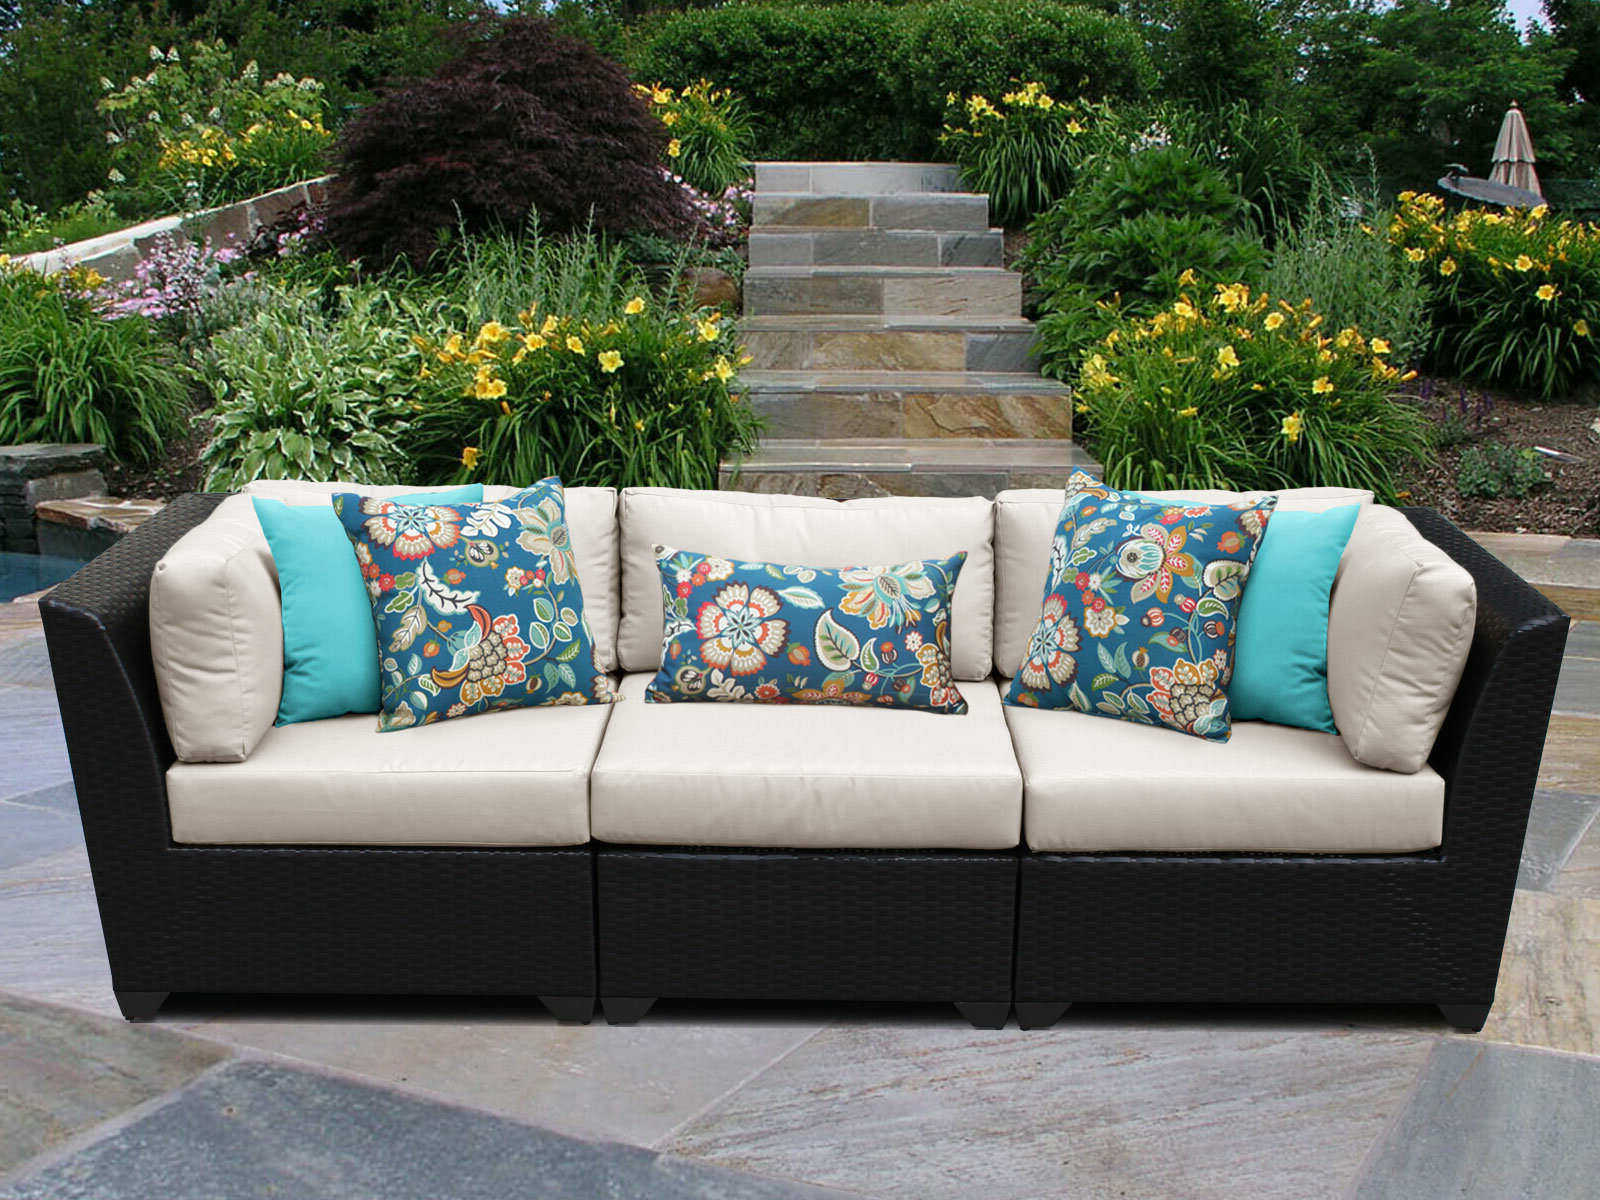 Well Known Tegan Patio Sofas With Cushions Intended For Tegan Patio Sofa With Cushions (Gallery 4 of 25)